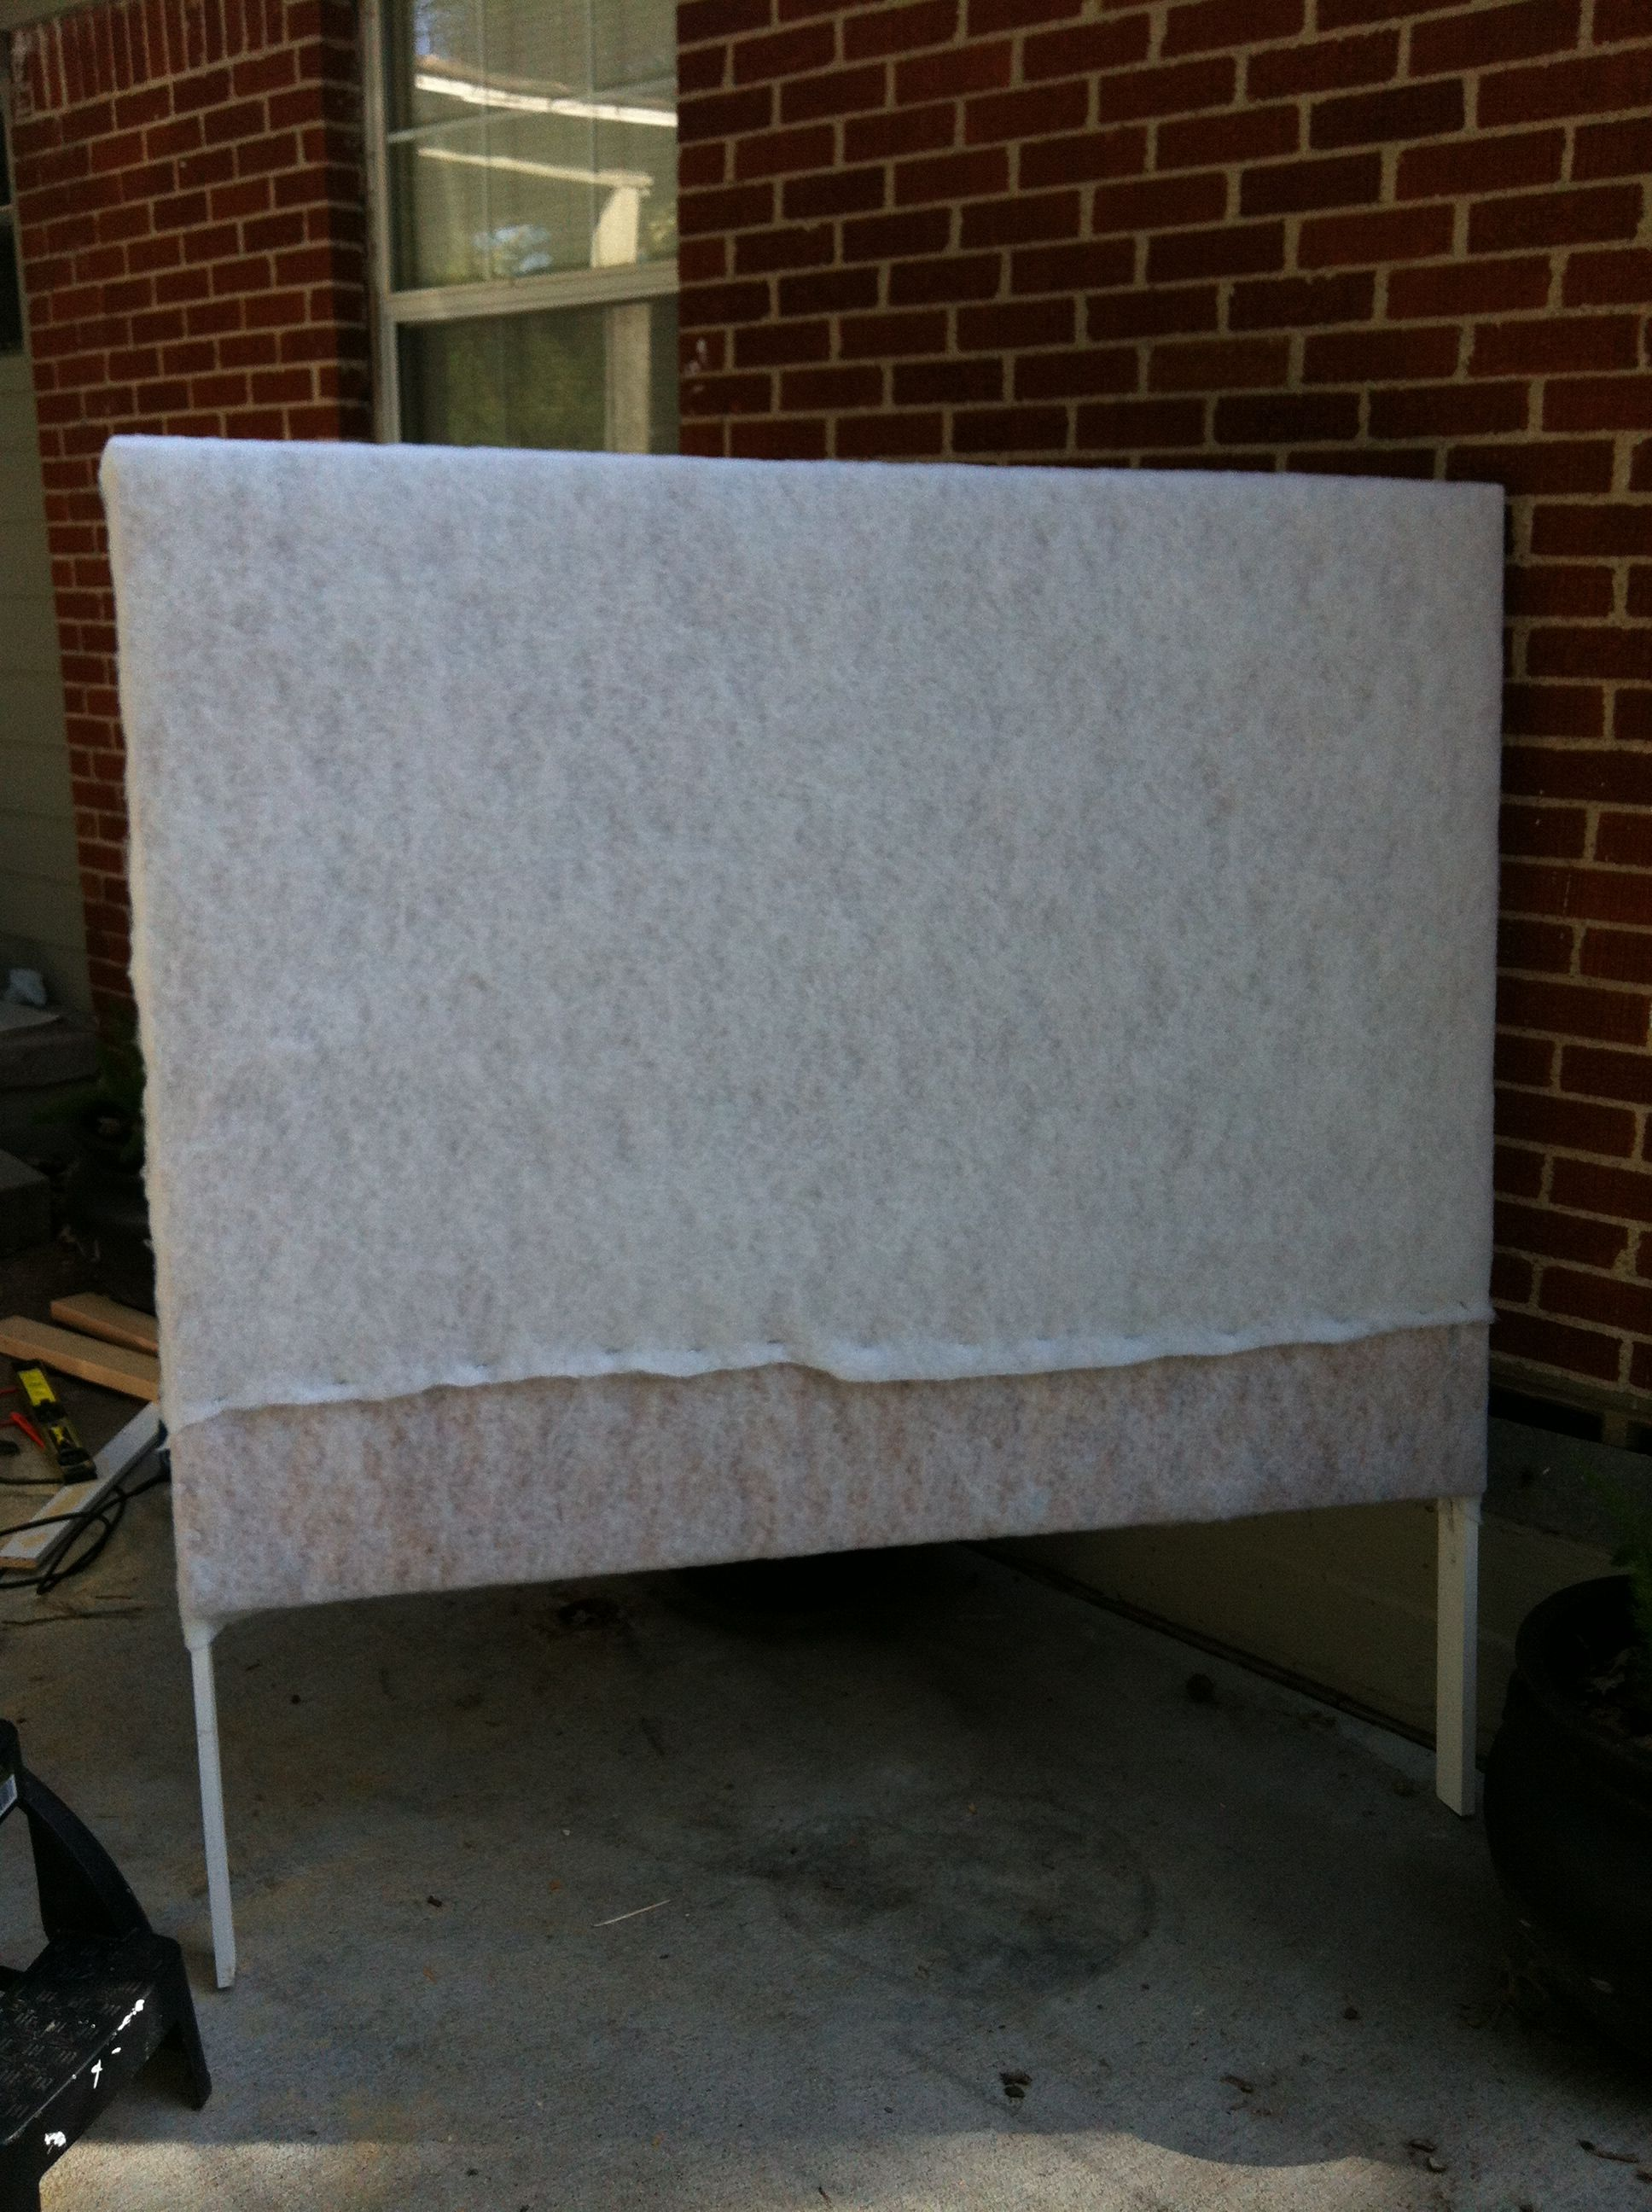 Upholstered Headboard project frame with Batting